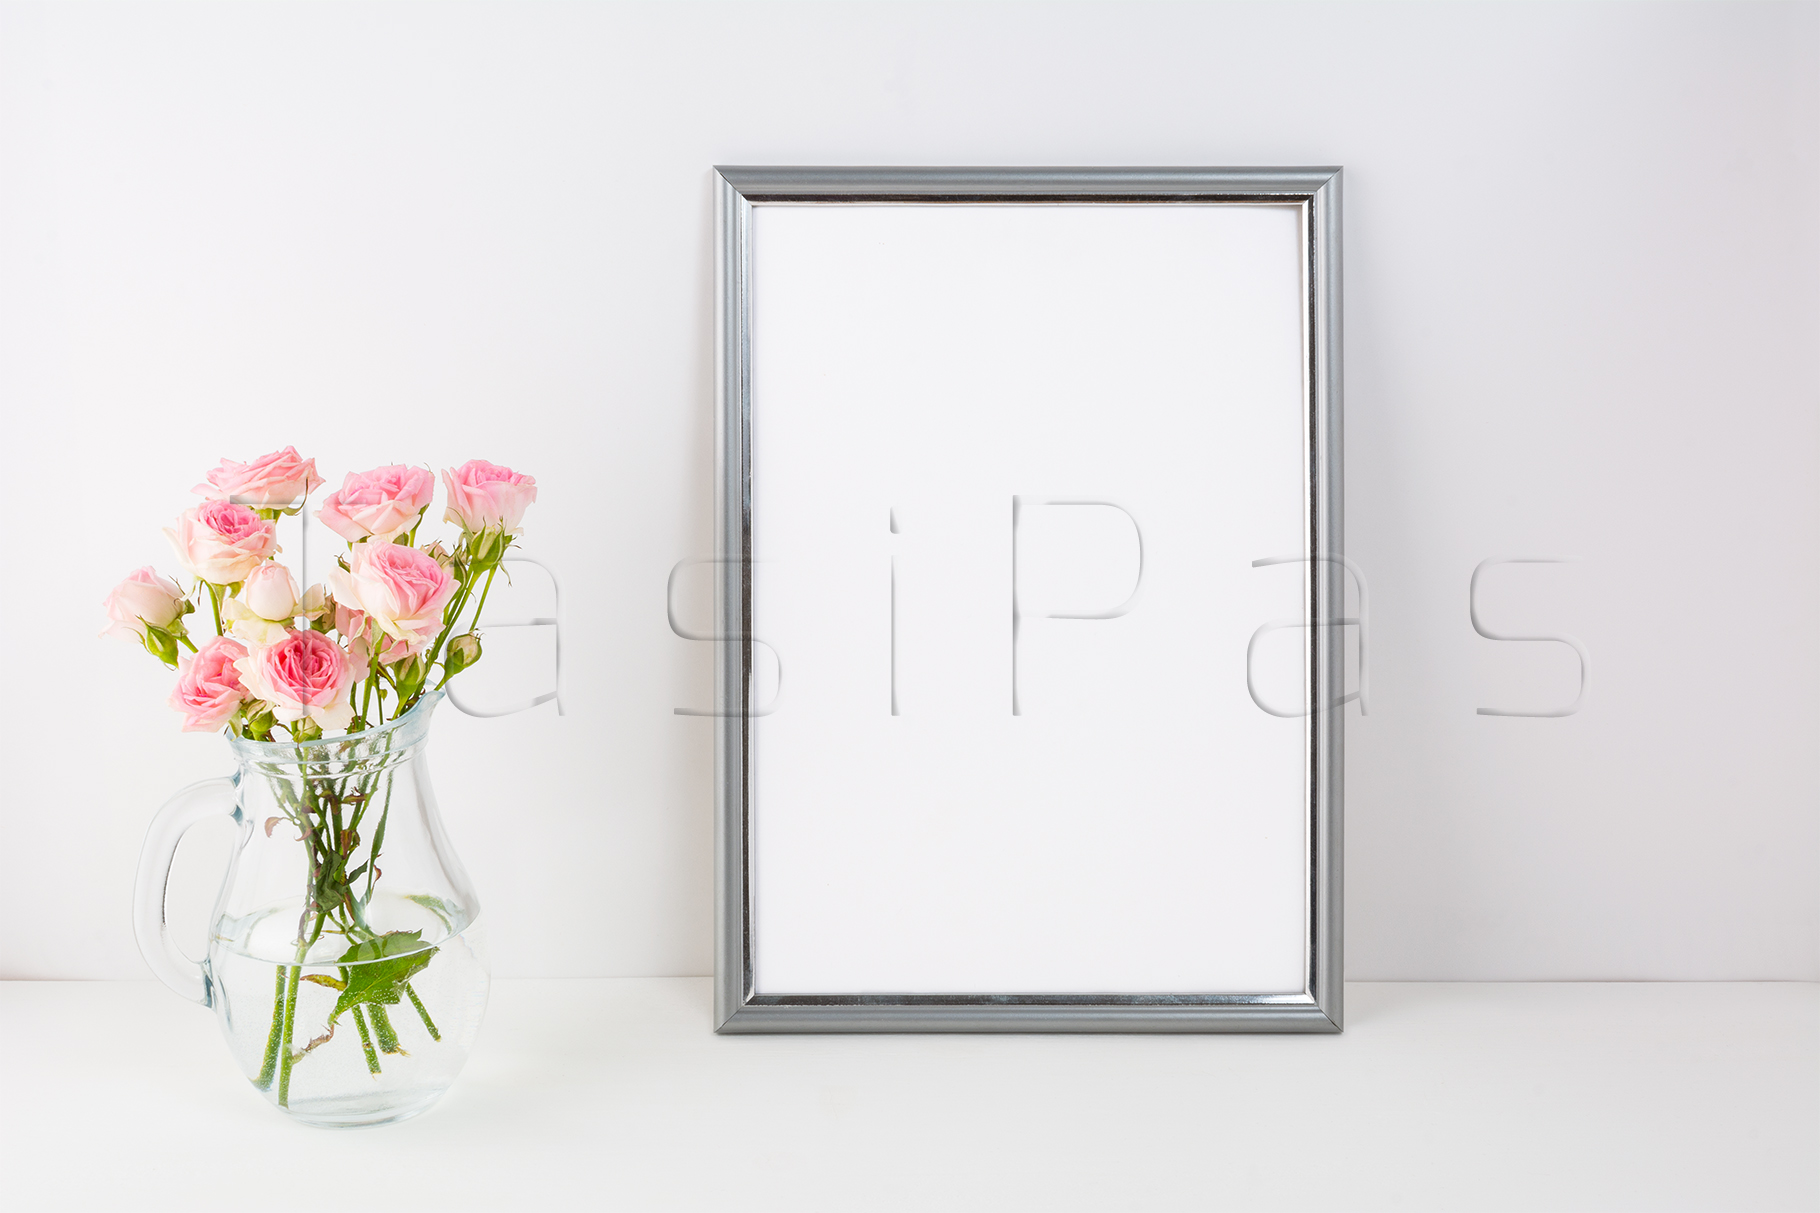 Silver frame mockup with pink roses example image 2